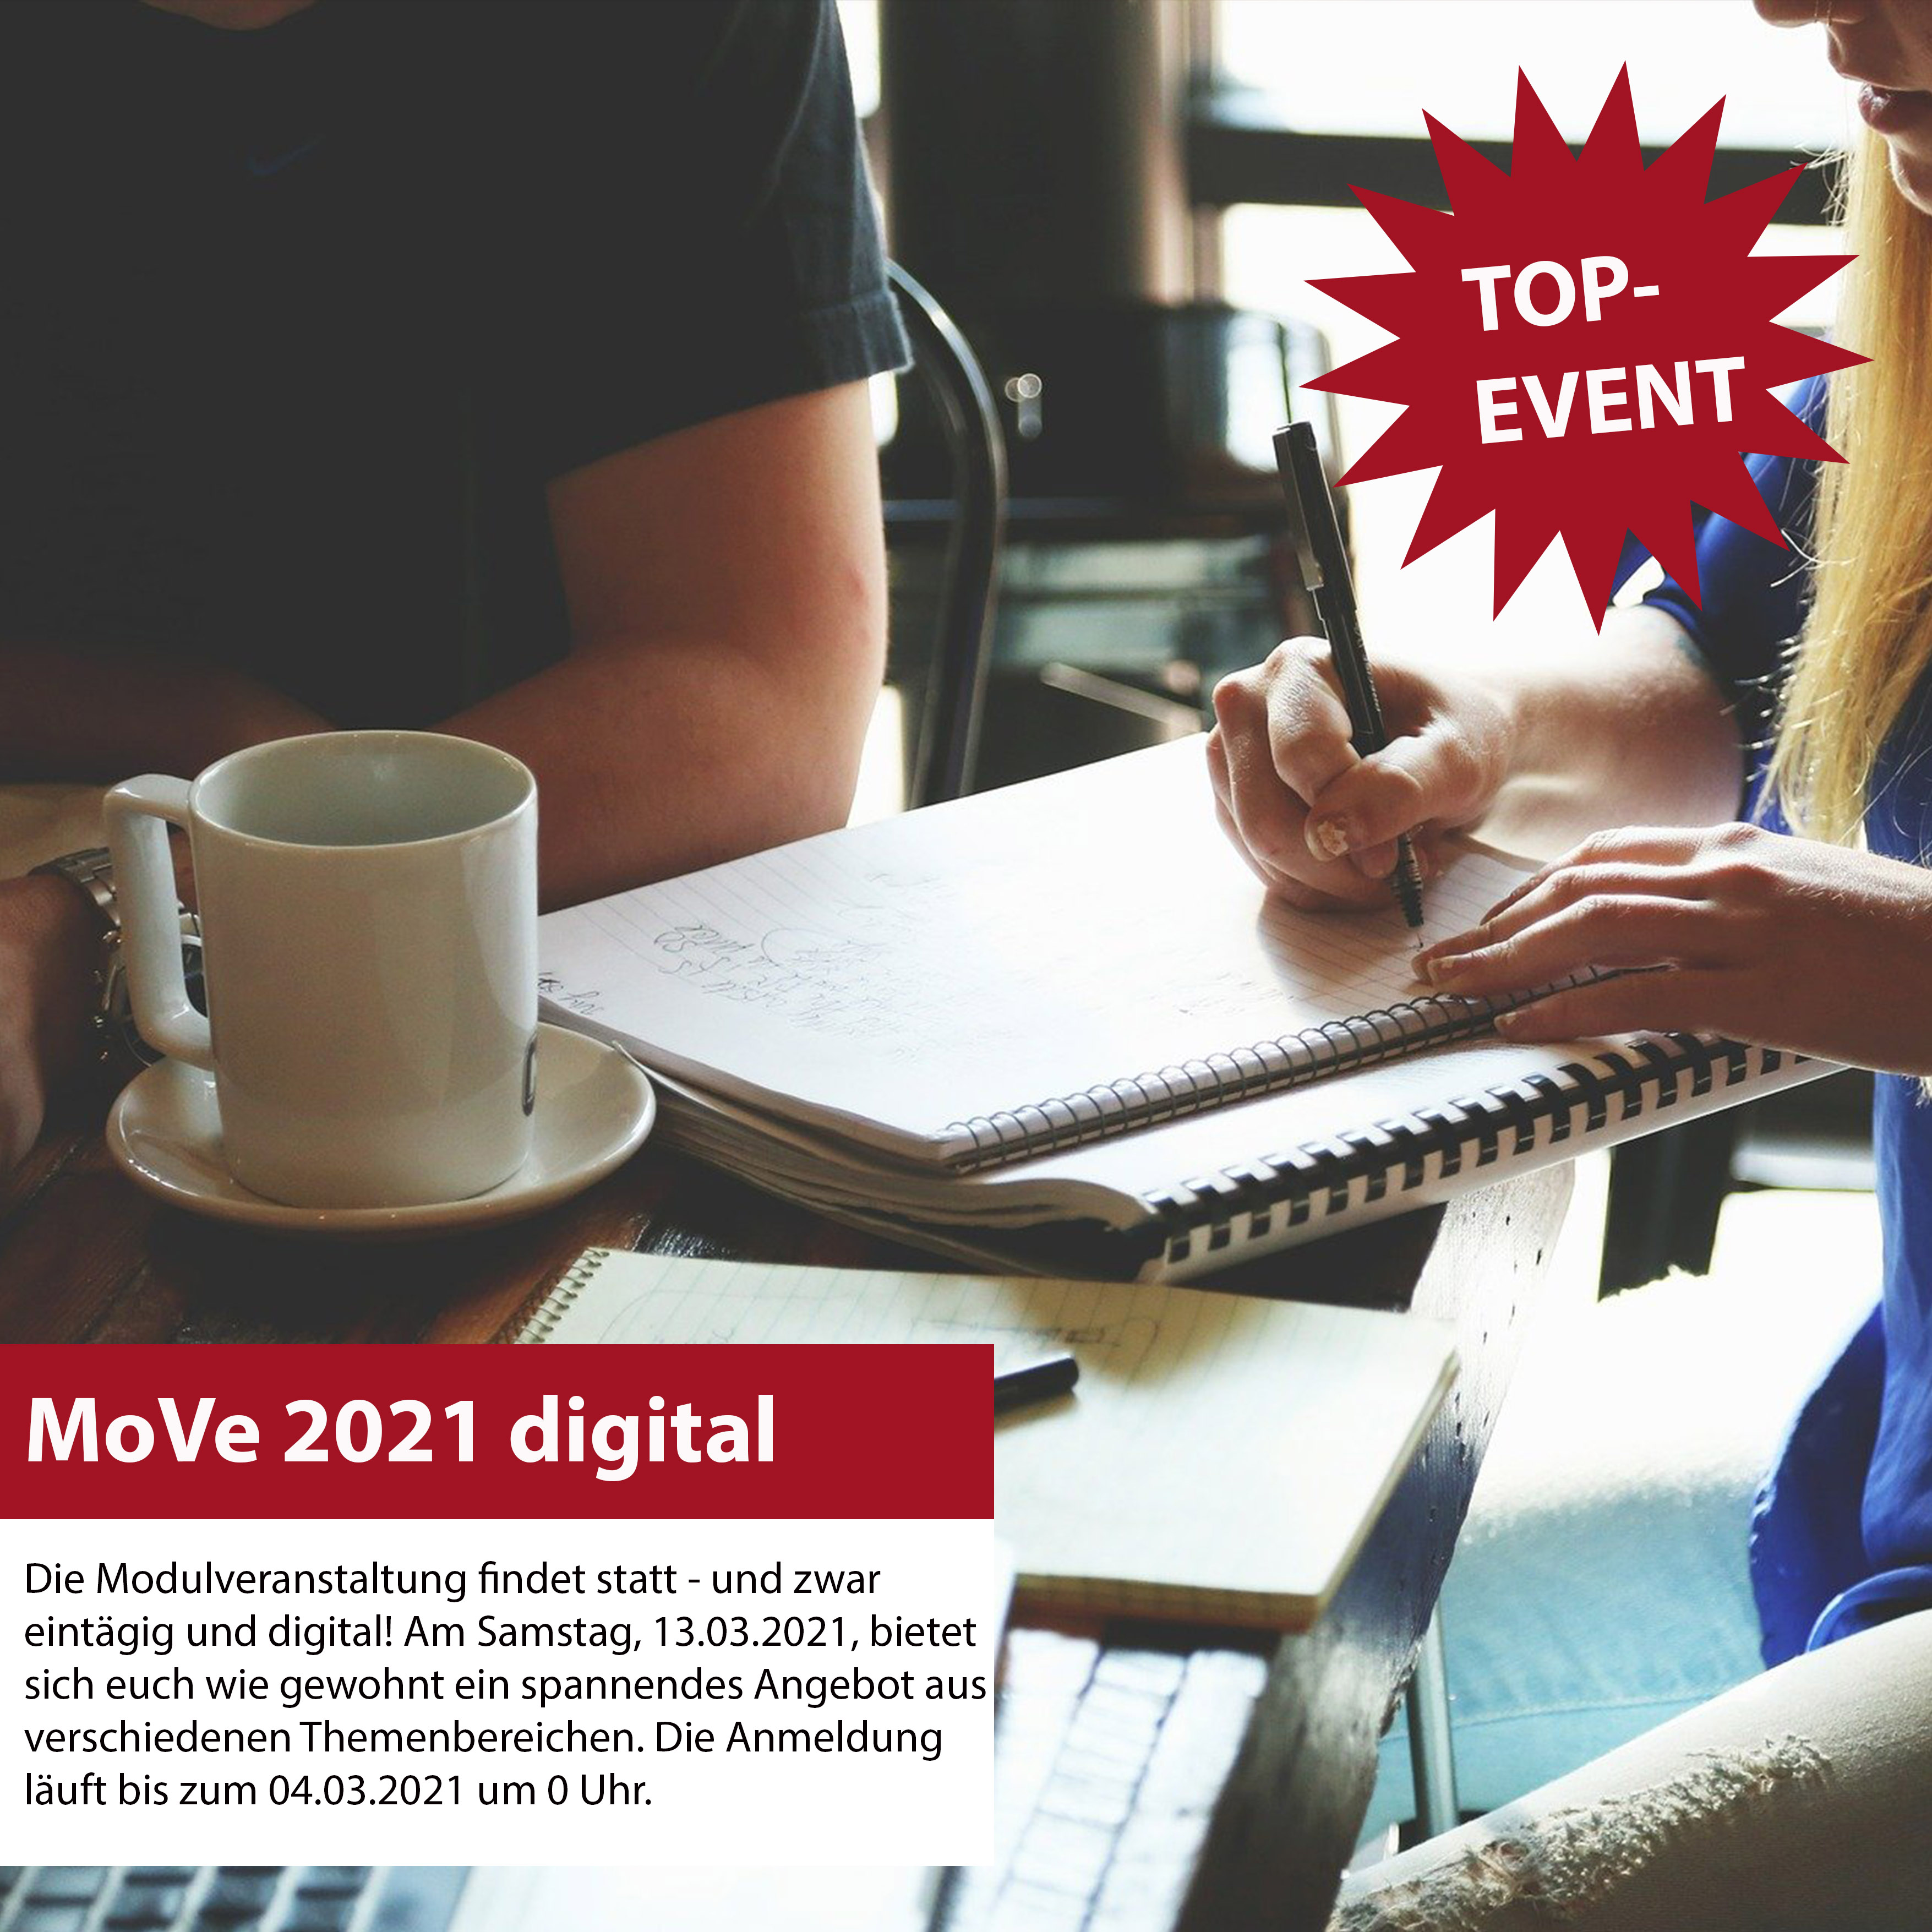 Top-Event_Move_2021.jpg